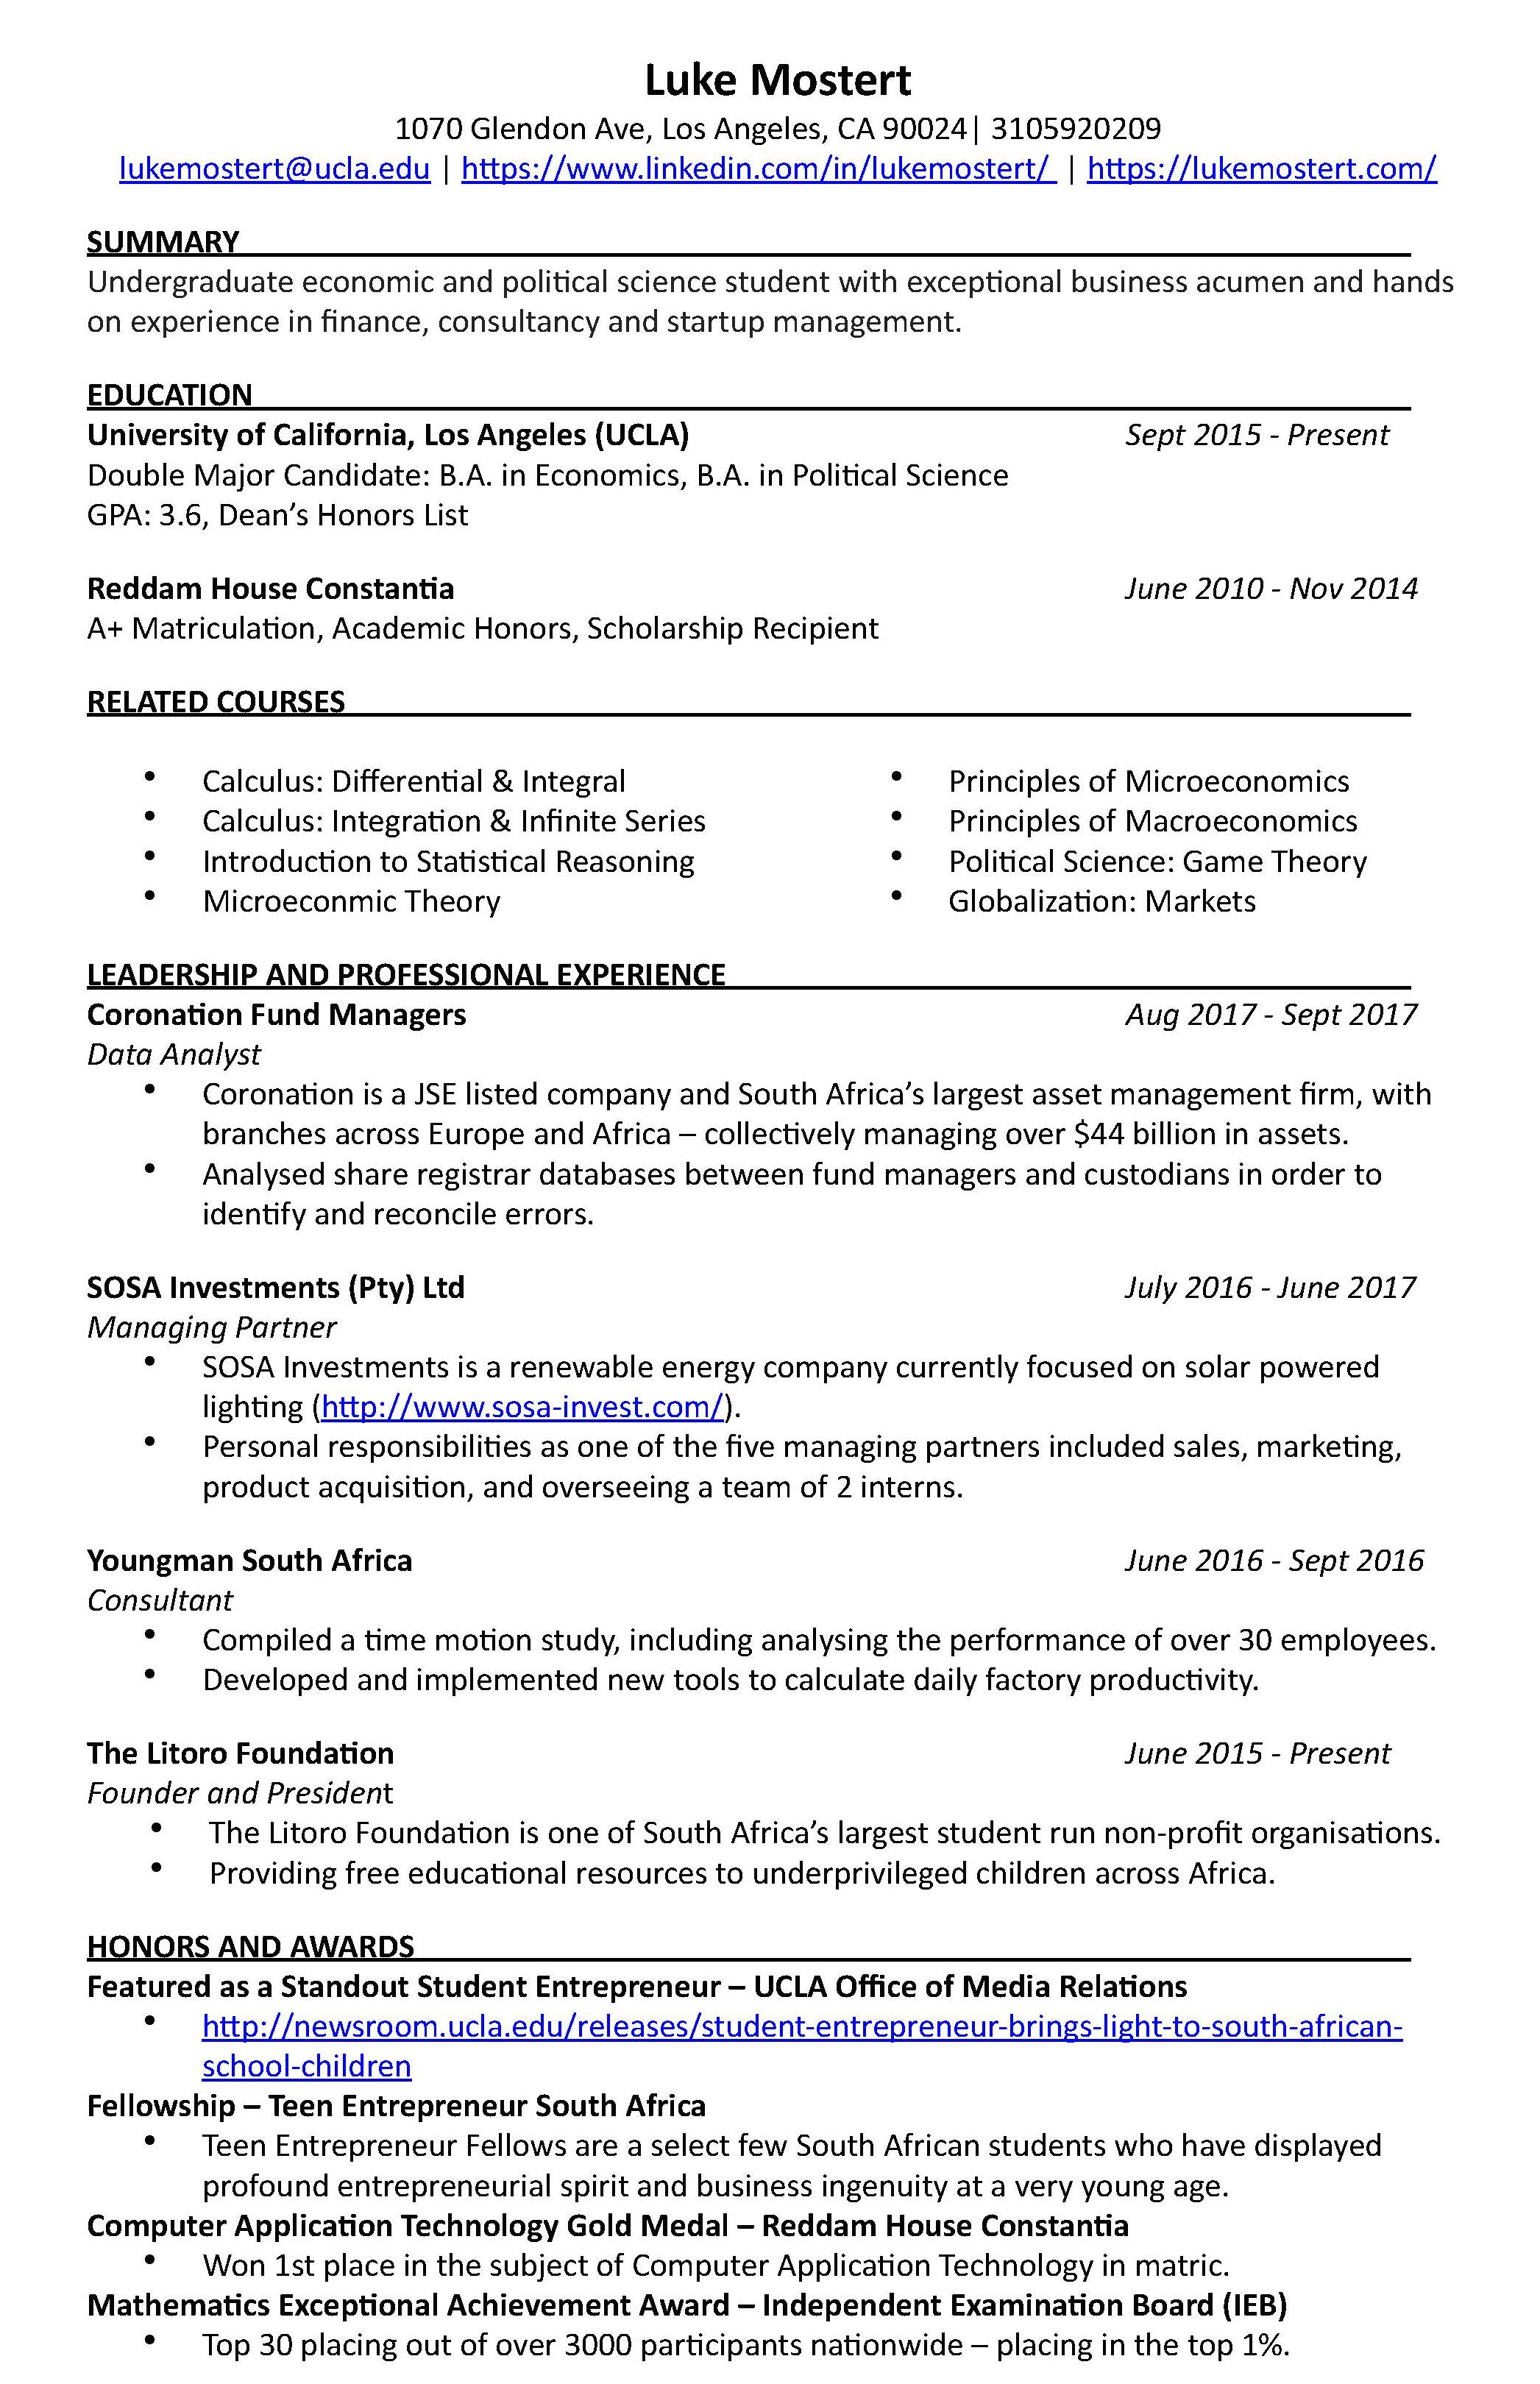 Resume Of Luke Mostert Luke Mostert